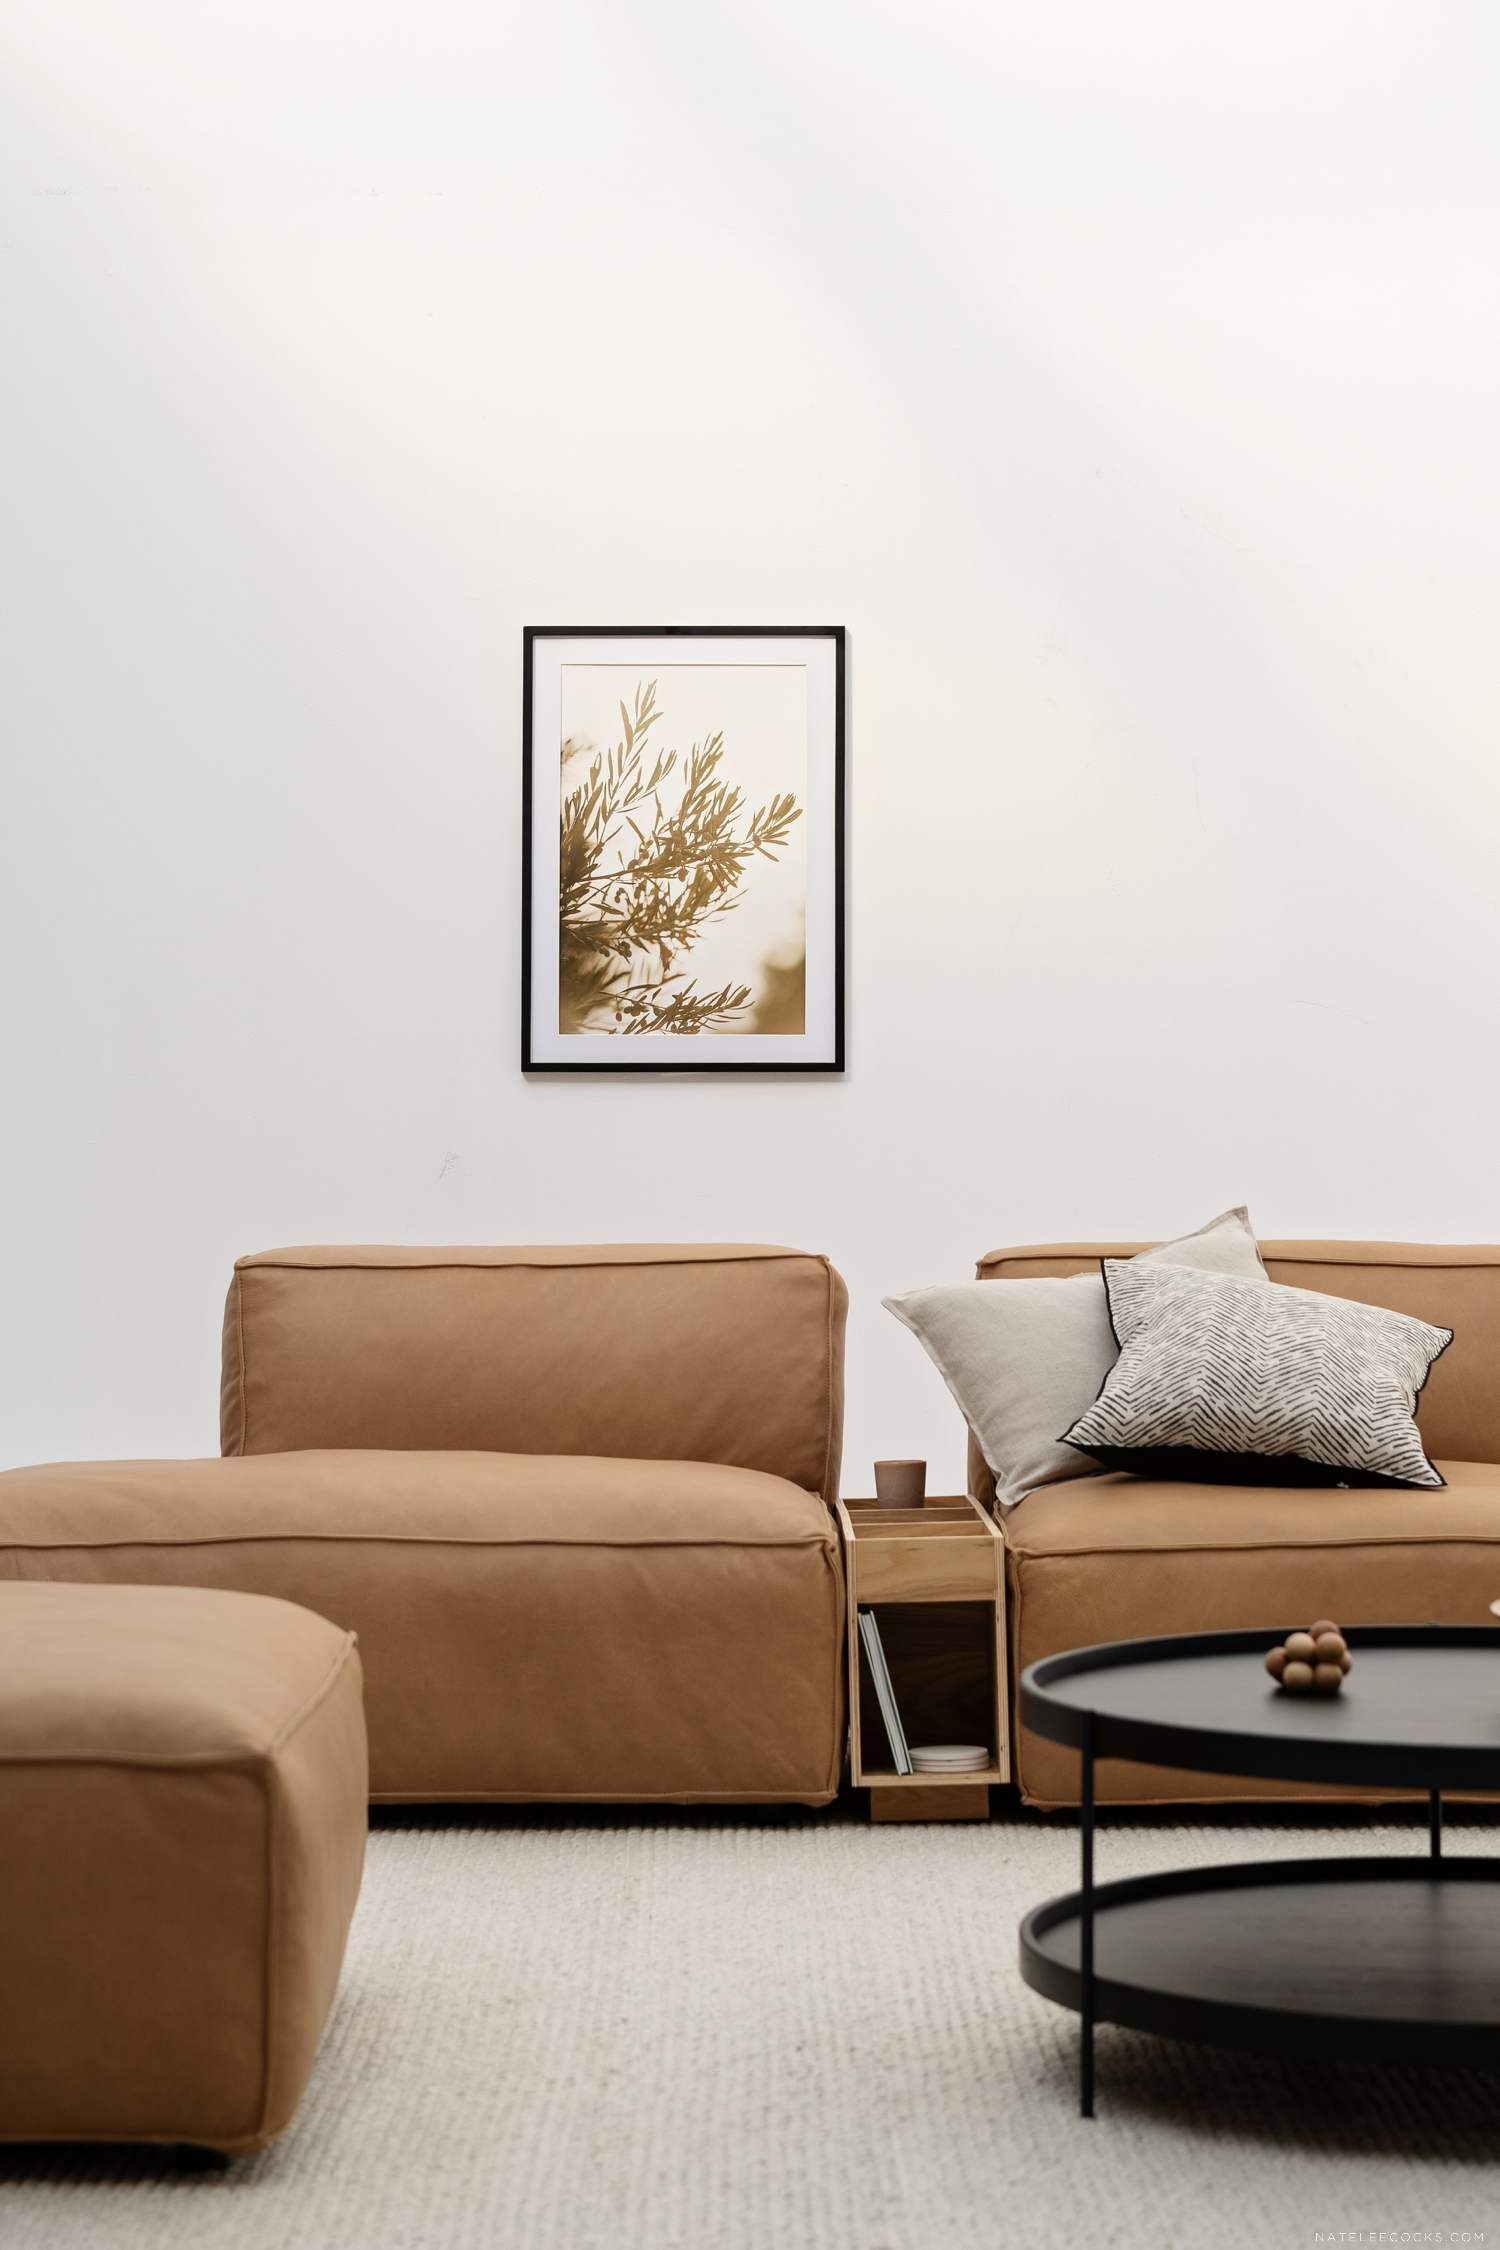 THE NEWEST FURNITURE AND DECOR DESTINATION | THE LOOM COLLECTION